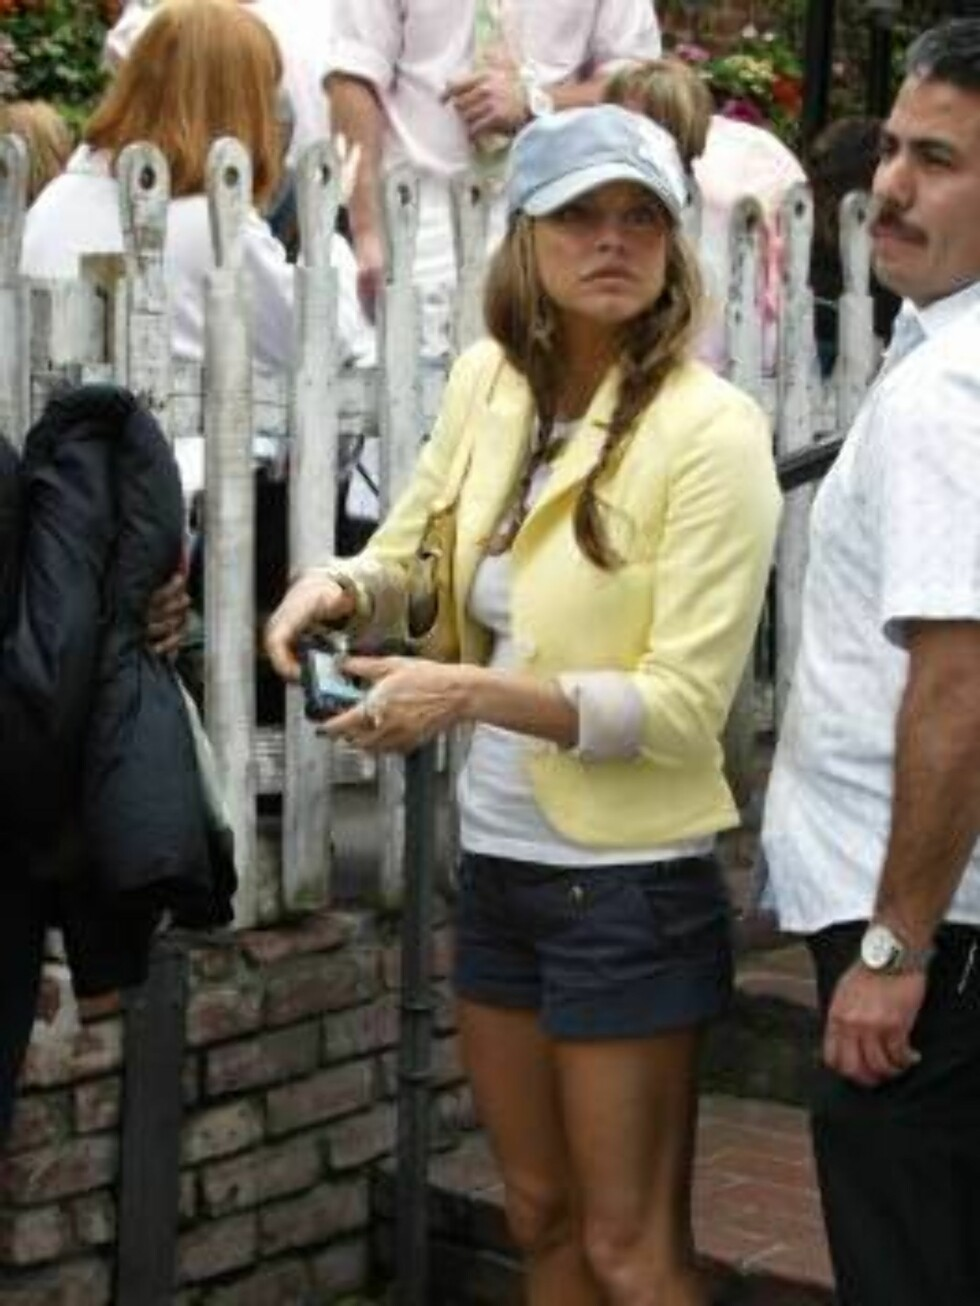 Code: X17XX8 - Garcia, Beverly Hills, USA, 16.03.2005: Black Eyed Peas singer Fergie visits Beverly Hills eatery The Ivy in shorts. All Over Press / X17 Agency / Garcia / ALL OVER PRESS Foto: All Over Press